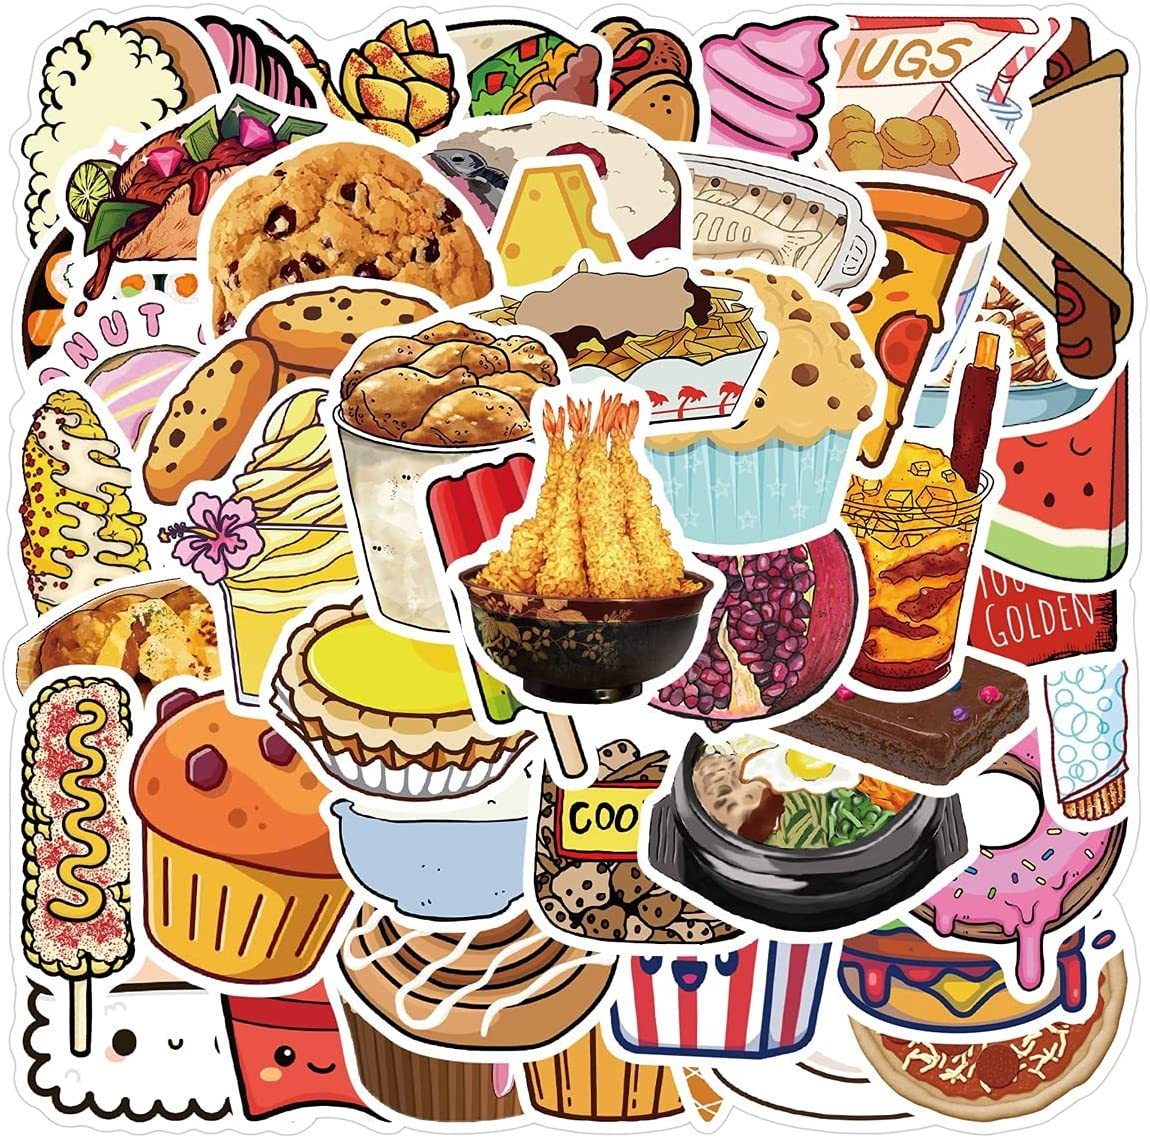 Cute Food Stickers Cake Snacks Sushi Rice Stickers 50PCS Ice Cream Cartoon Decals Waterproof Vinyl Stickers for Laptop Water Bottles Skateboard Phone Luggage Computer Car Guitar Motorcycle Journal